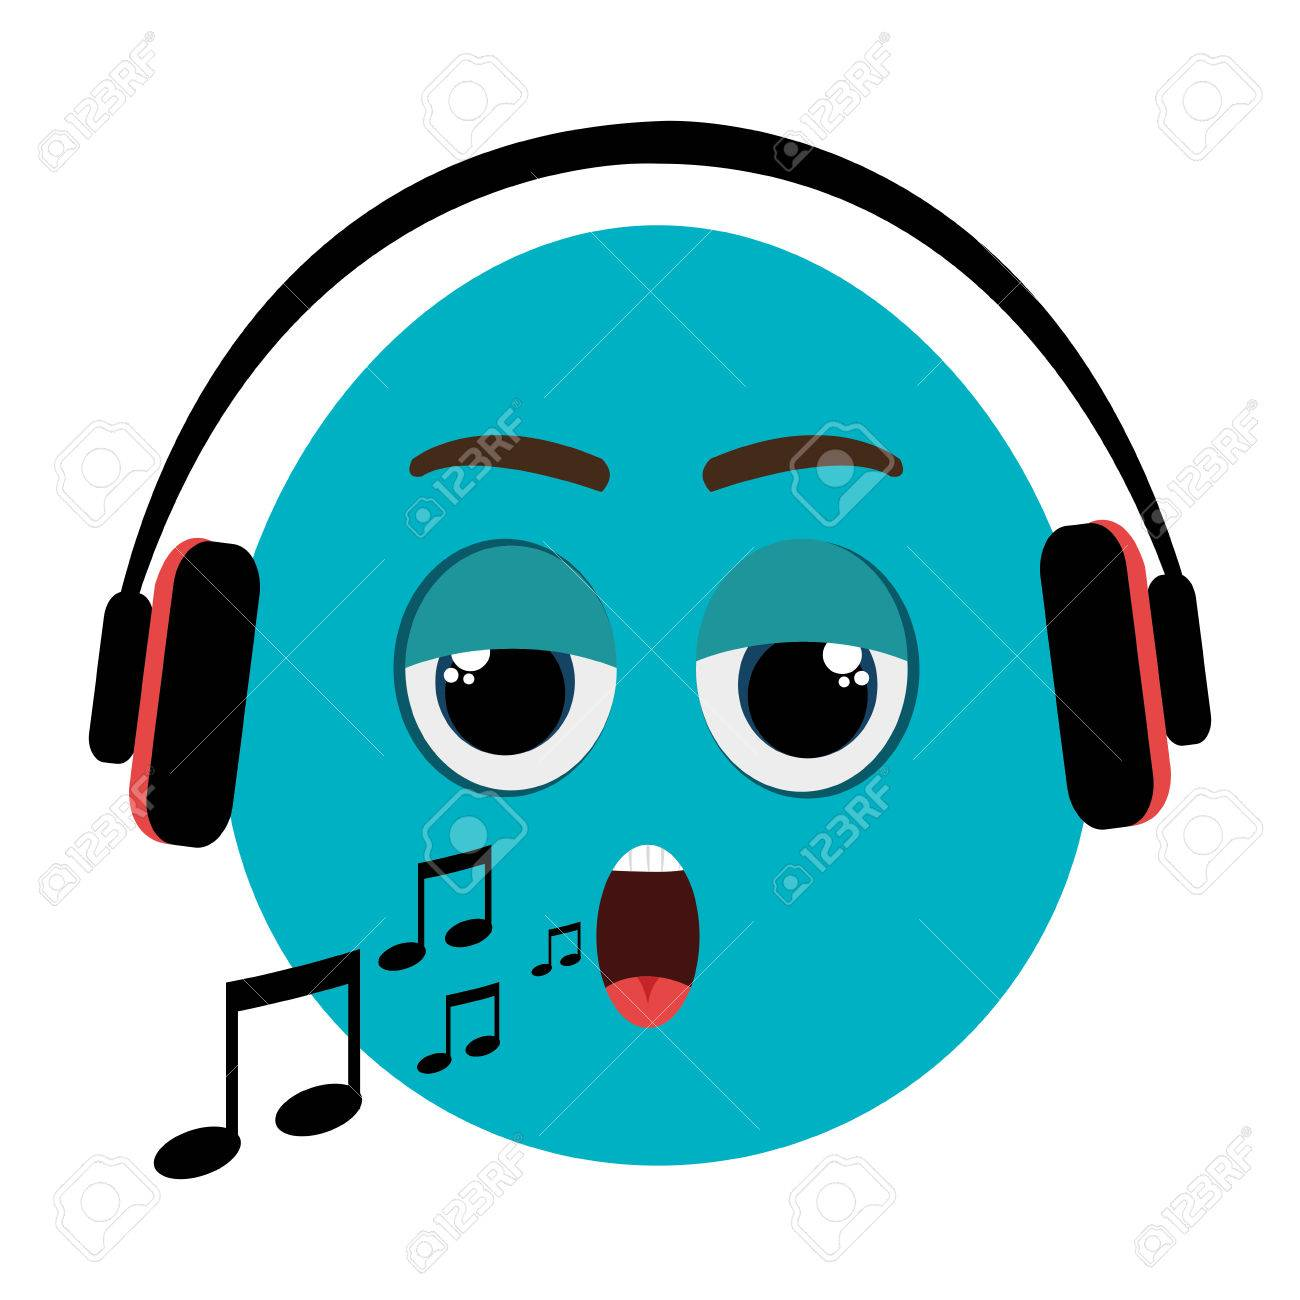 blue cartoon orbed face singing with musical notes and headphones rh 123rf com Music Notes Vector Musical Notes Symbols Vectors